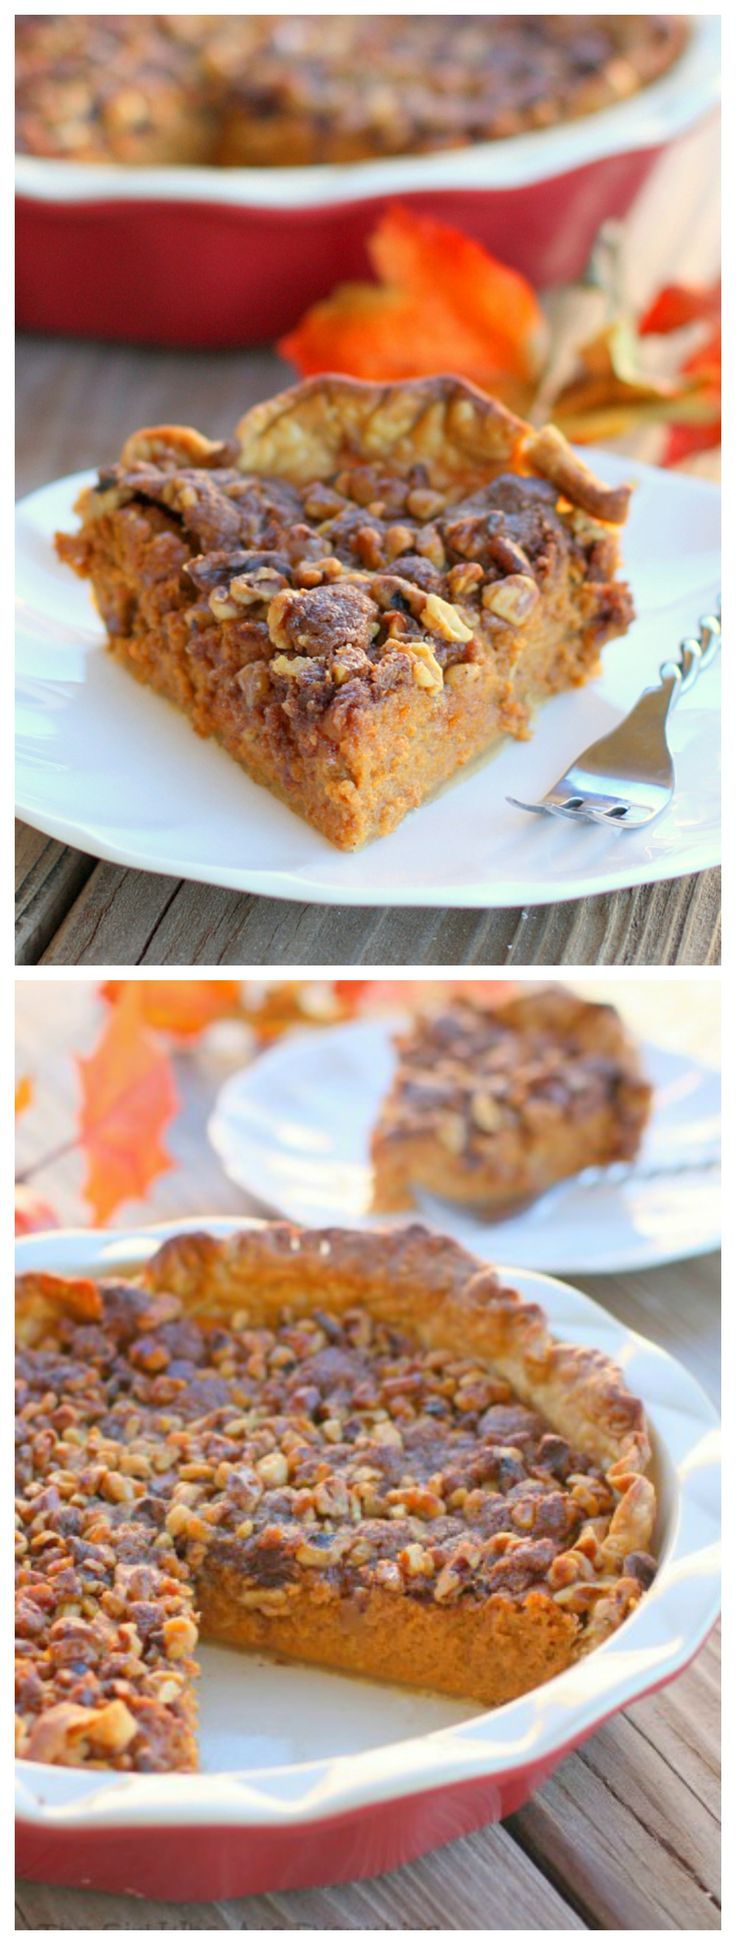 Streusel Topped Pumpkin Pie - the-girl-who-ate-everything.com